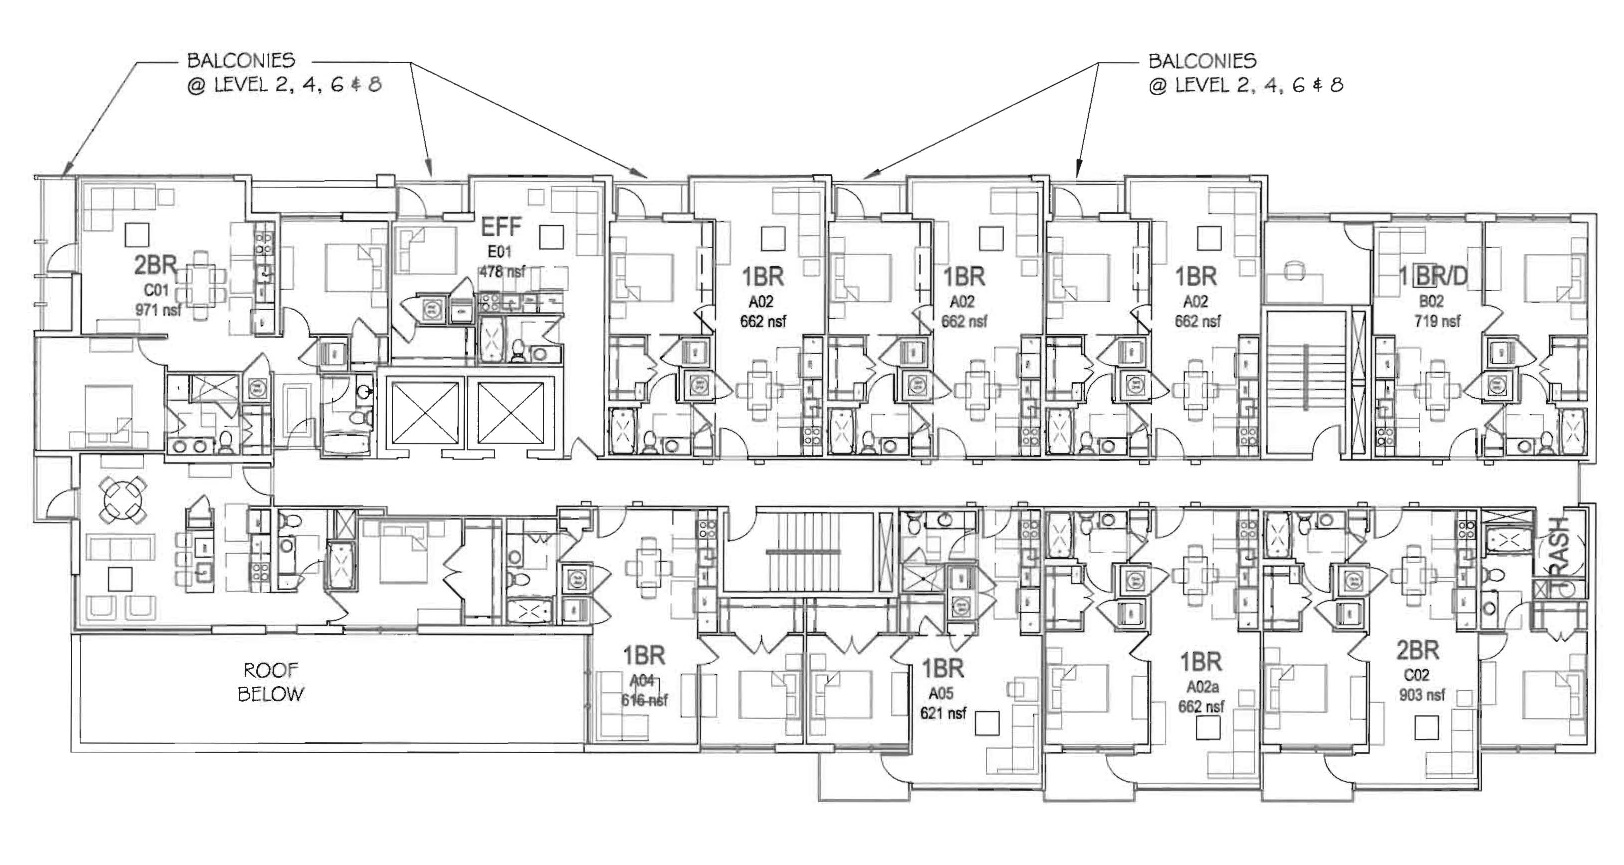 Apartment Building Floor Plans Designs apartment building plans